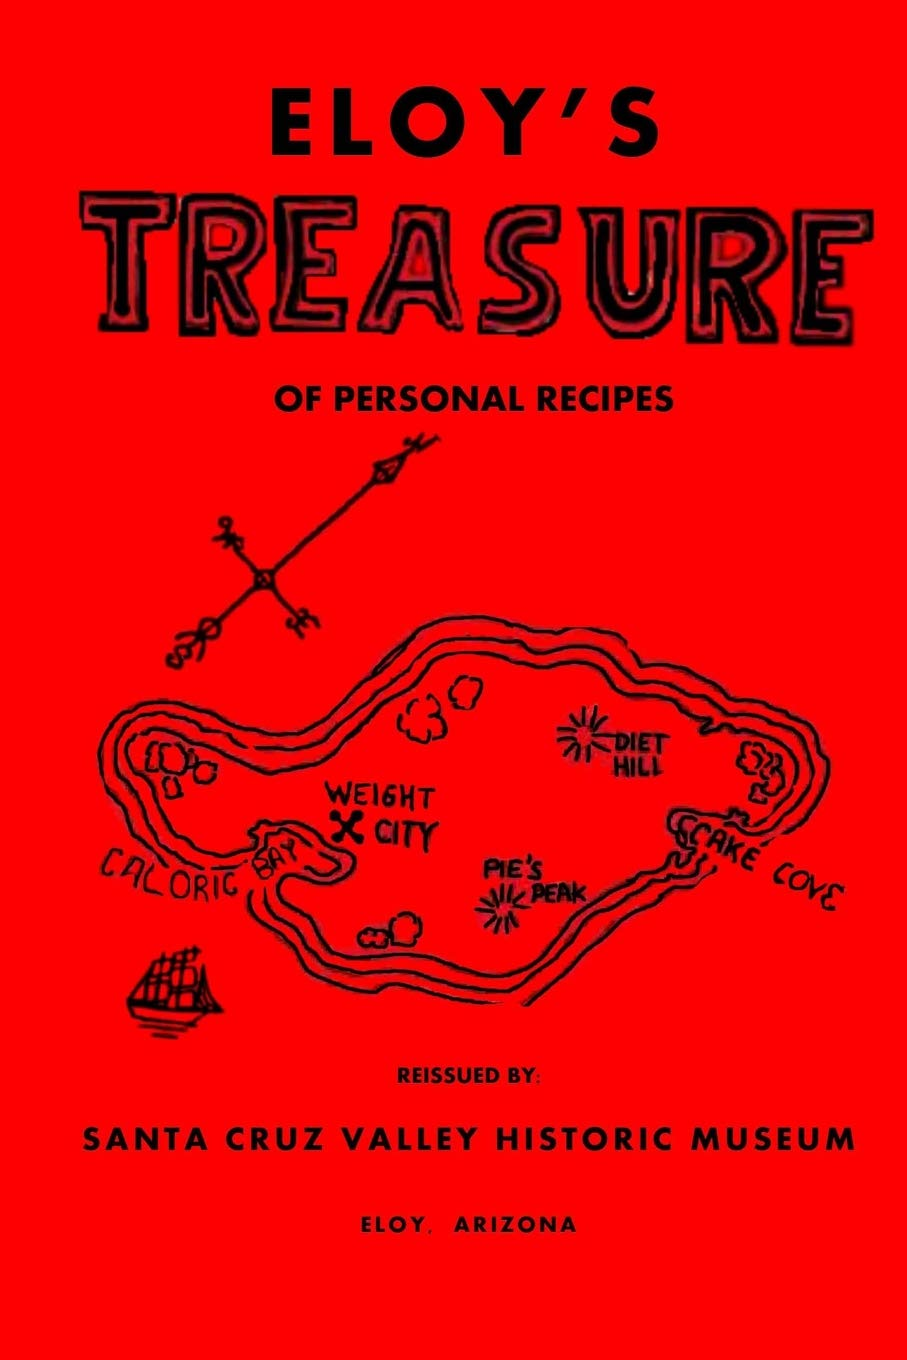 ELOY'S Treasure: Of Personal Recipes